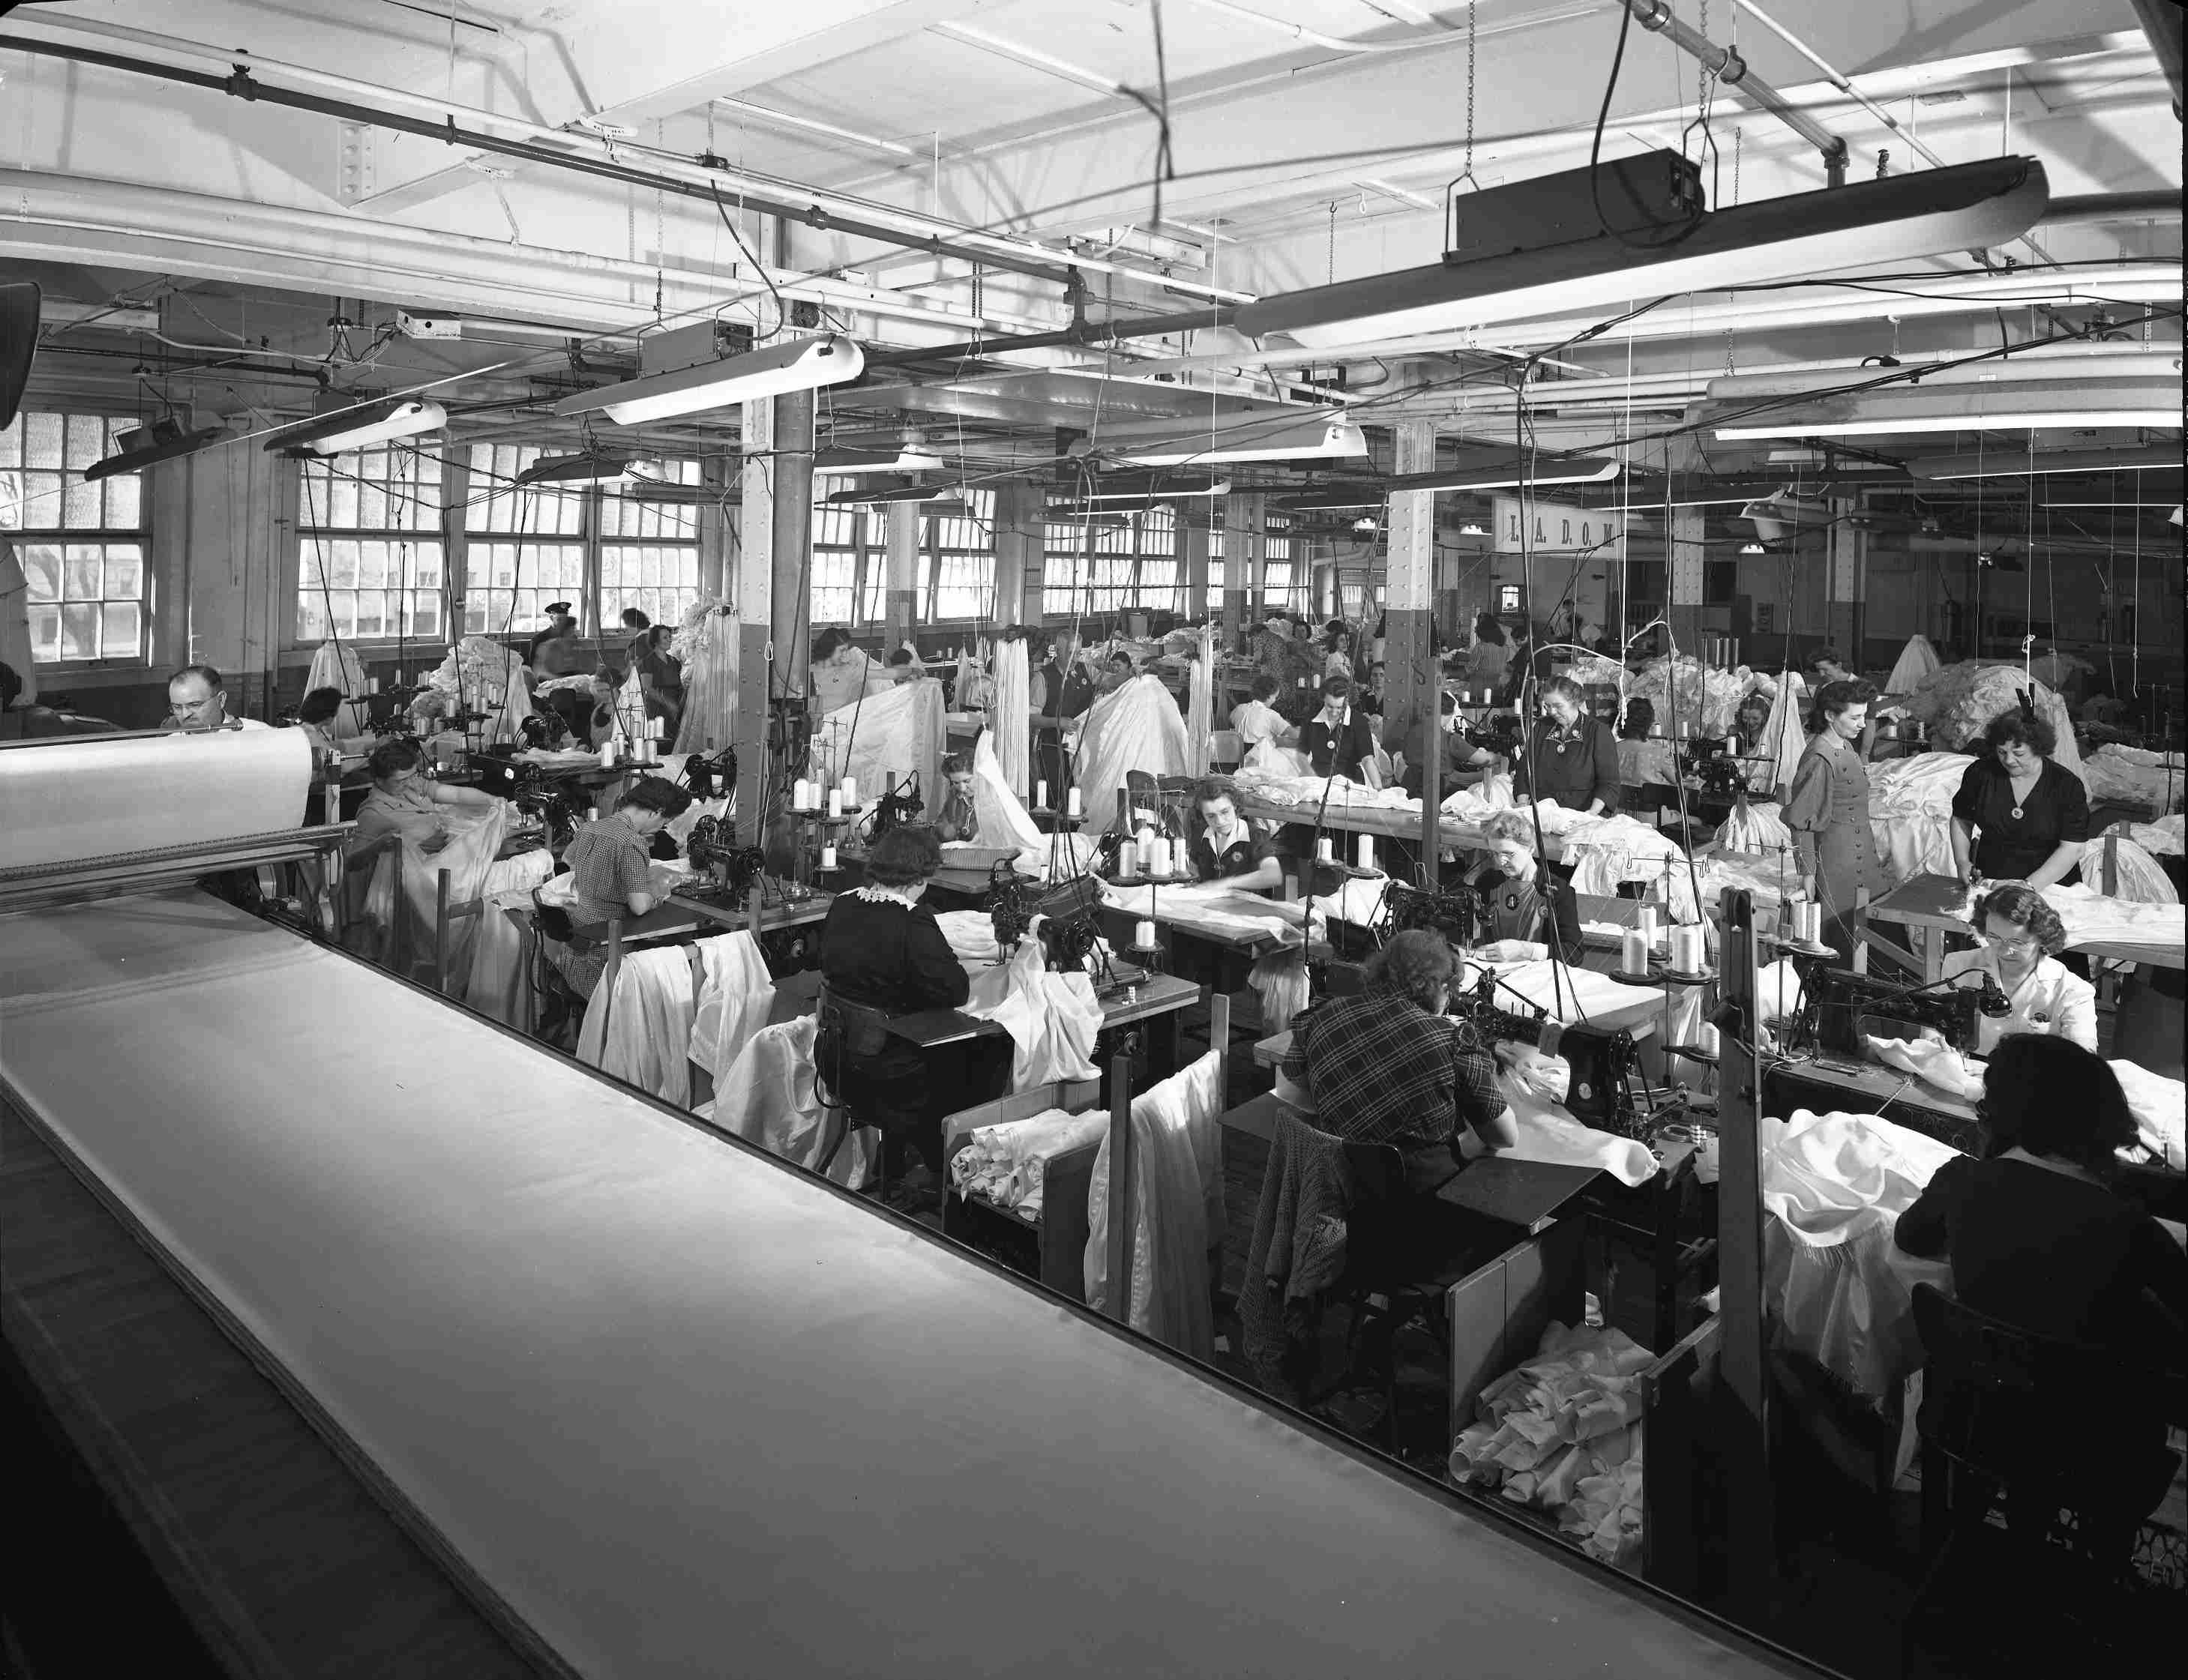 Making parachutes at the Hoover Company during World War II